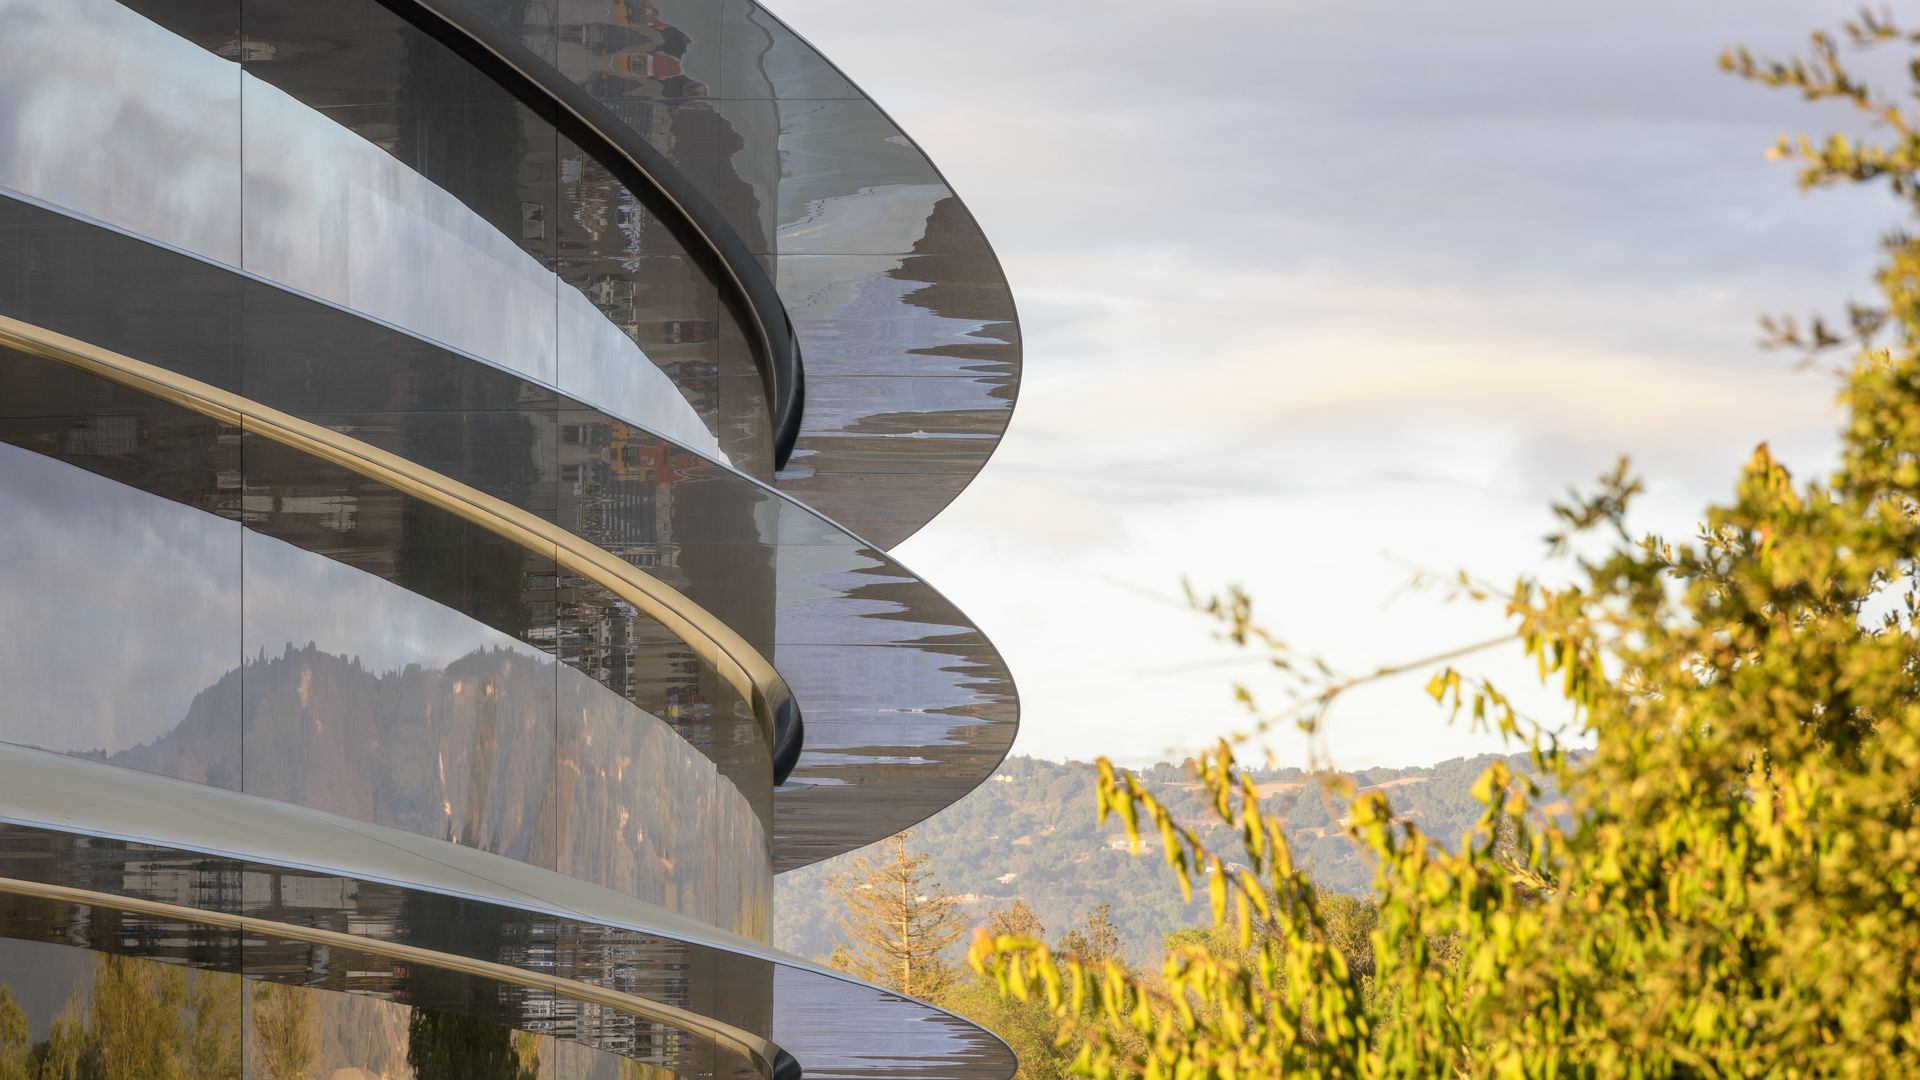 Apple's new Apple Park headquarters